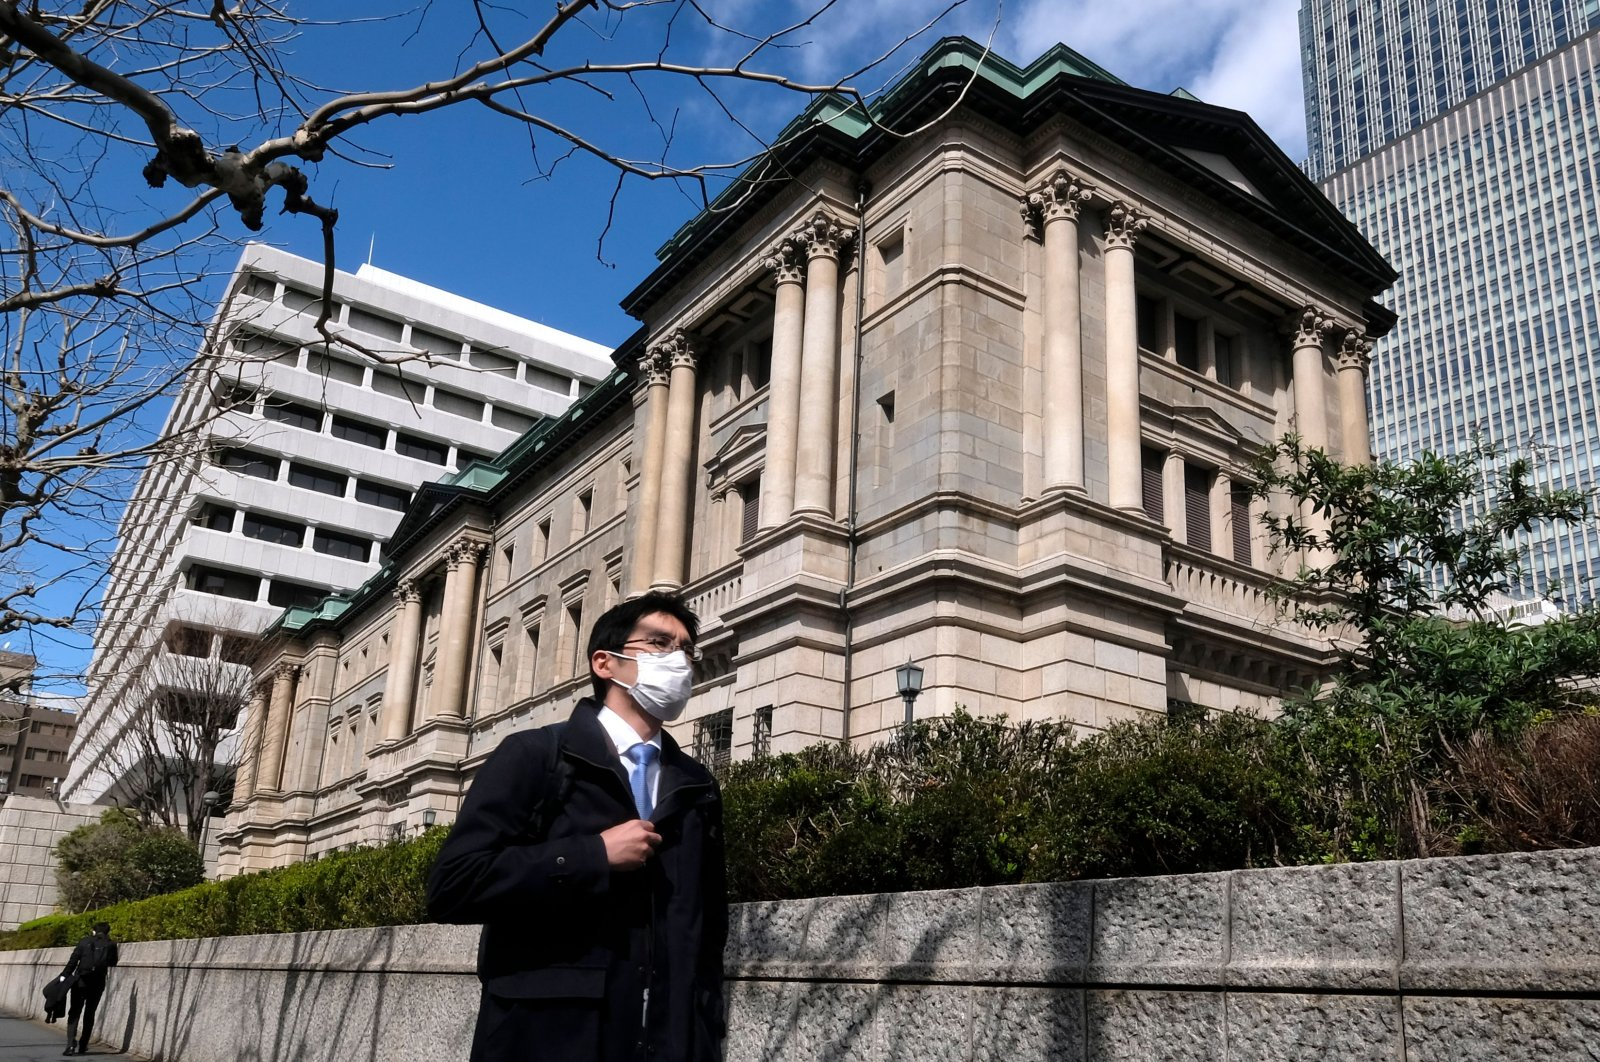 A pedestrian wearing a face mask walks in front of the Bank of Japan headquarters in Tokyo, March 16, 2020. (AFP Photo)